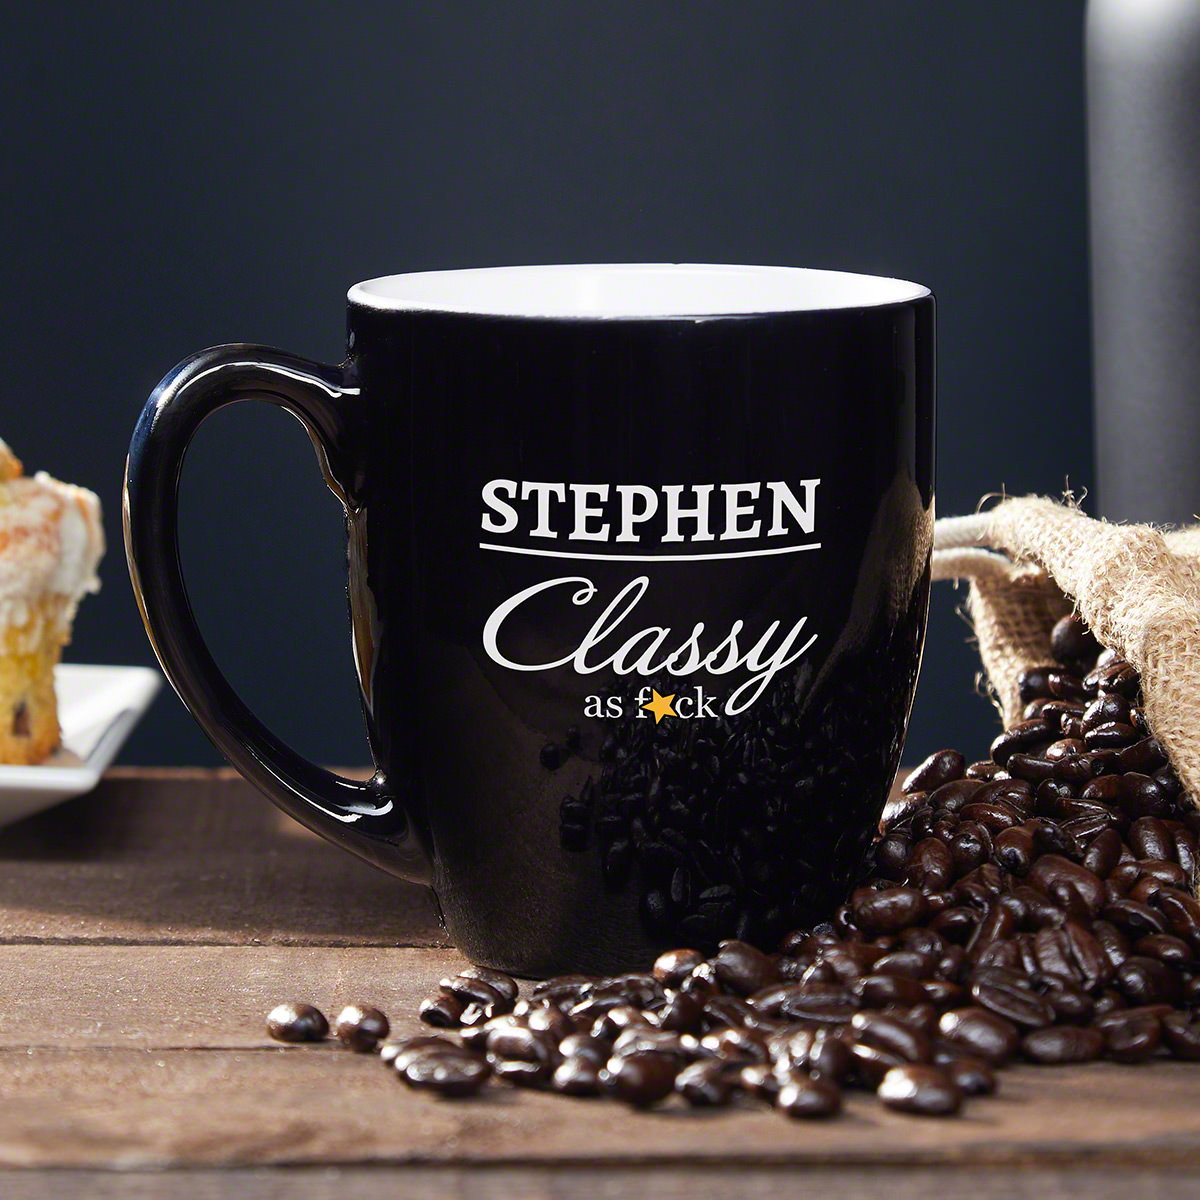 It's time to let the world you're the classiest bro in the world. A personalized funny coffee mug engraved with the finest four letter word is exactly what you need to step it up a notch. Engraved with the name of your choice, this mug will keep your #mug